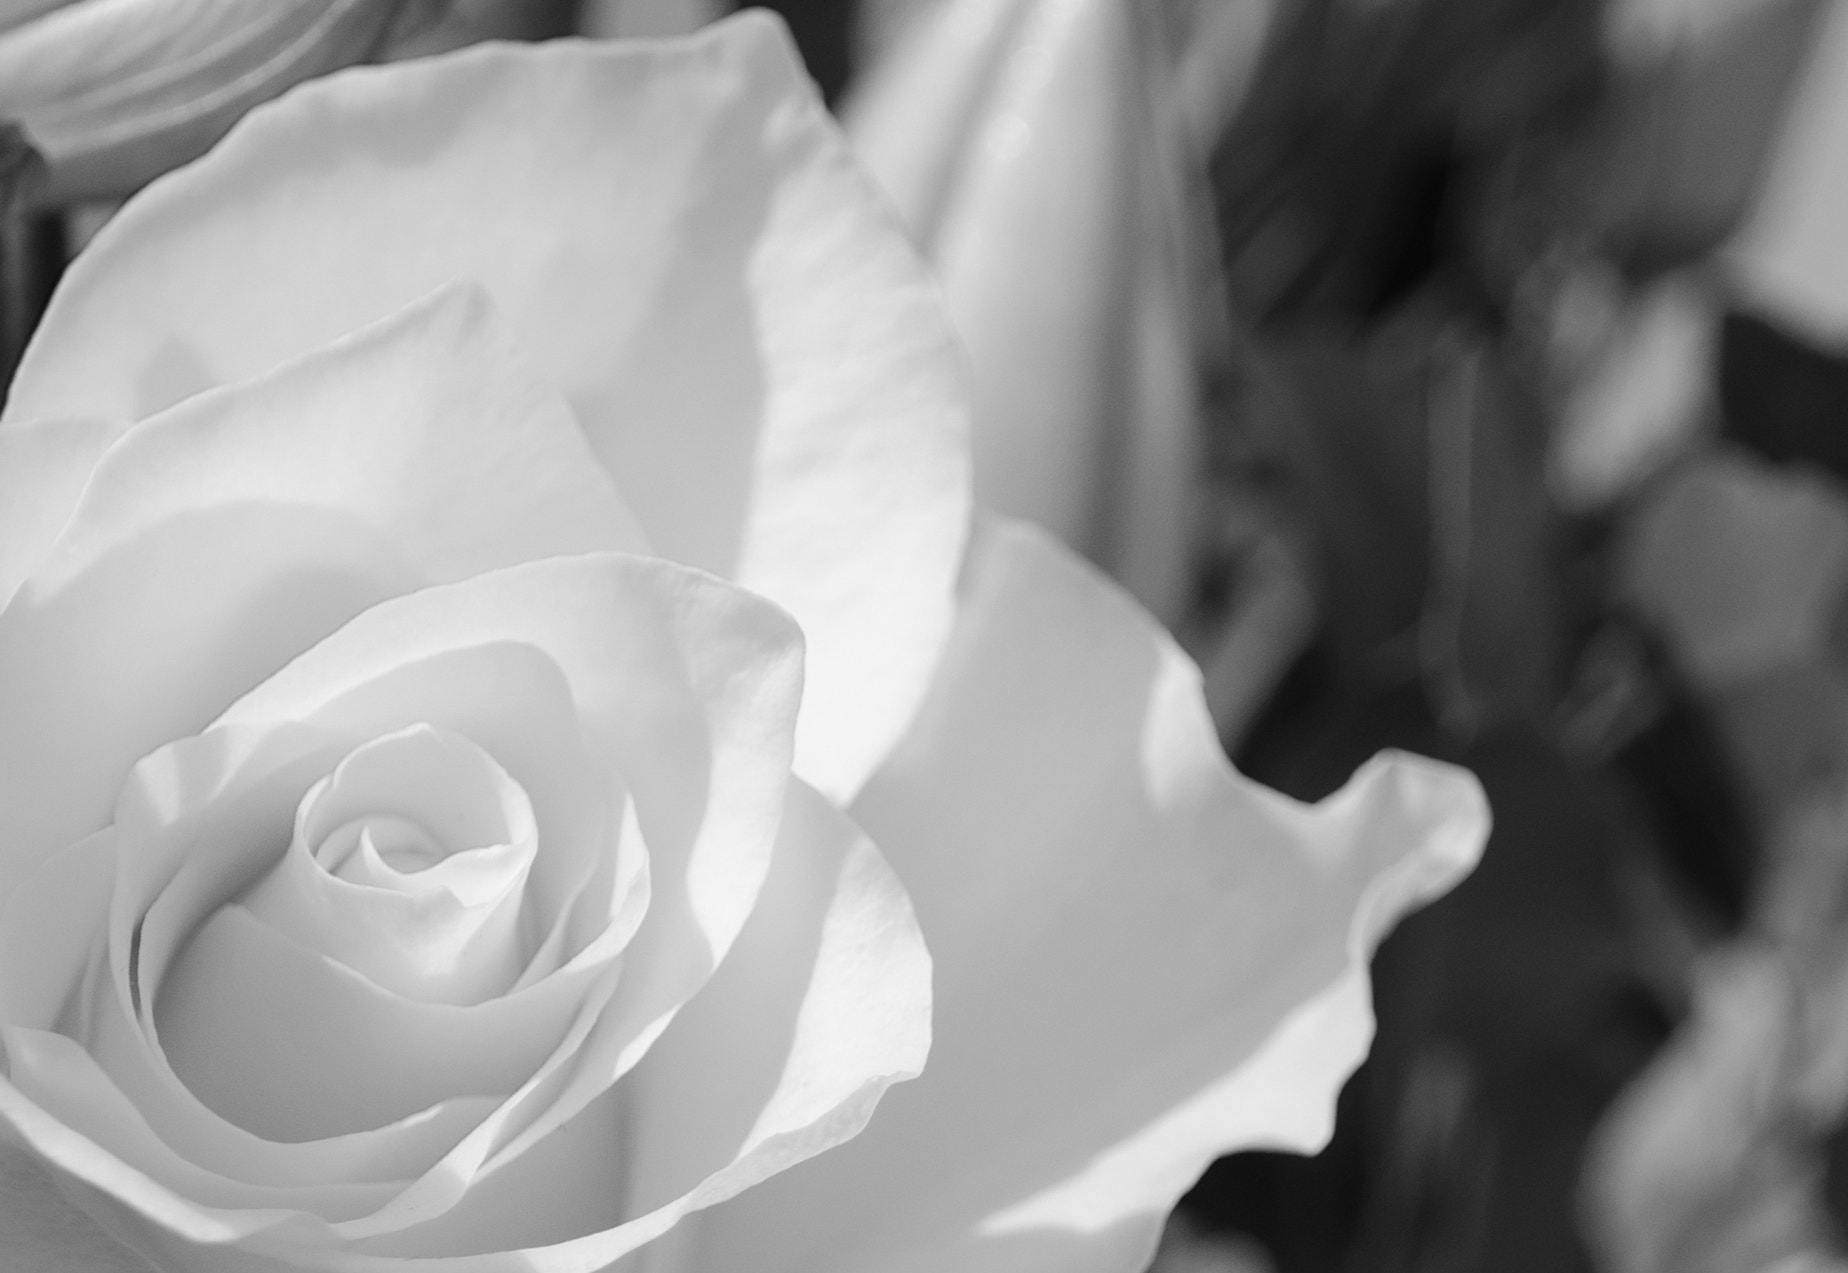 Photograph 45-365 - petal by Gary   on 500px